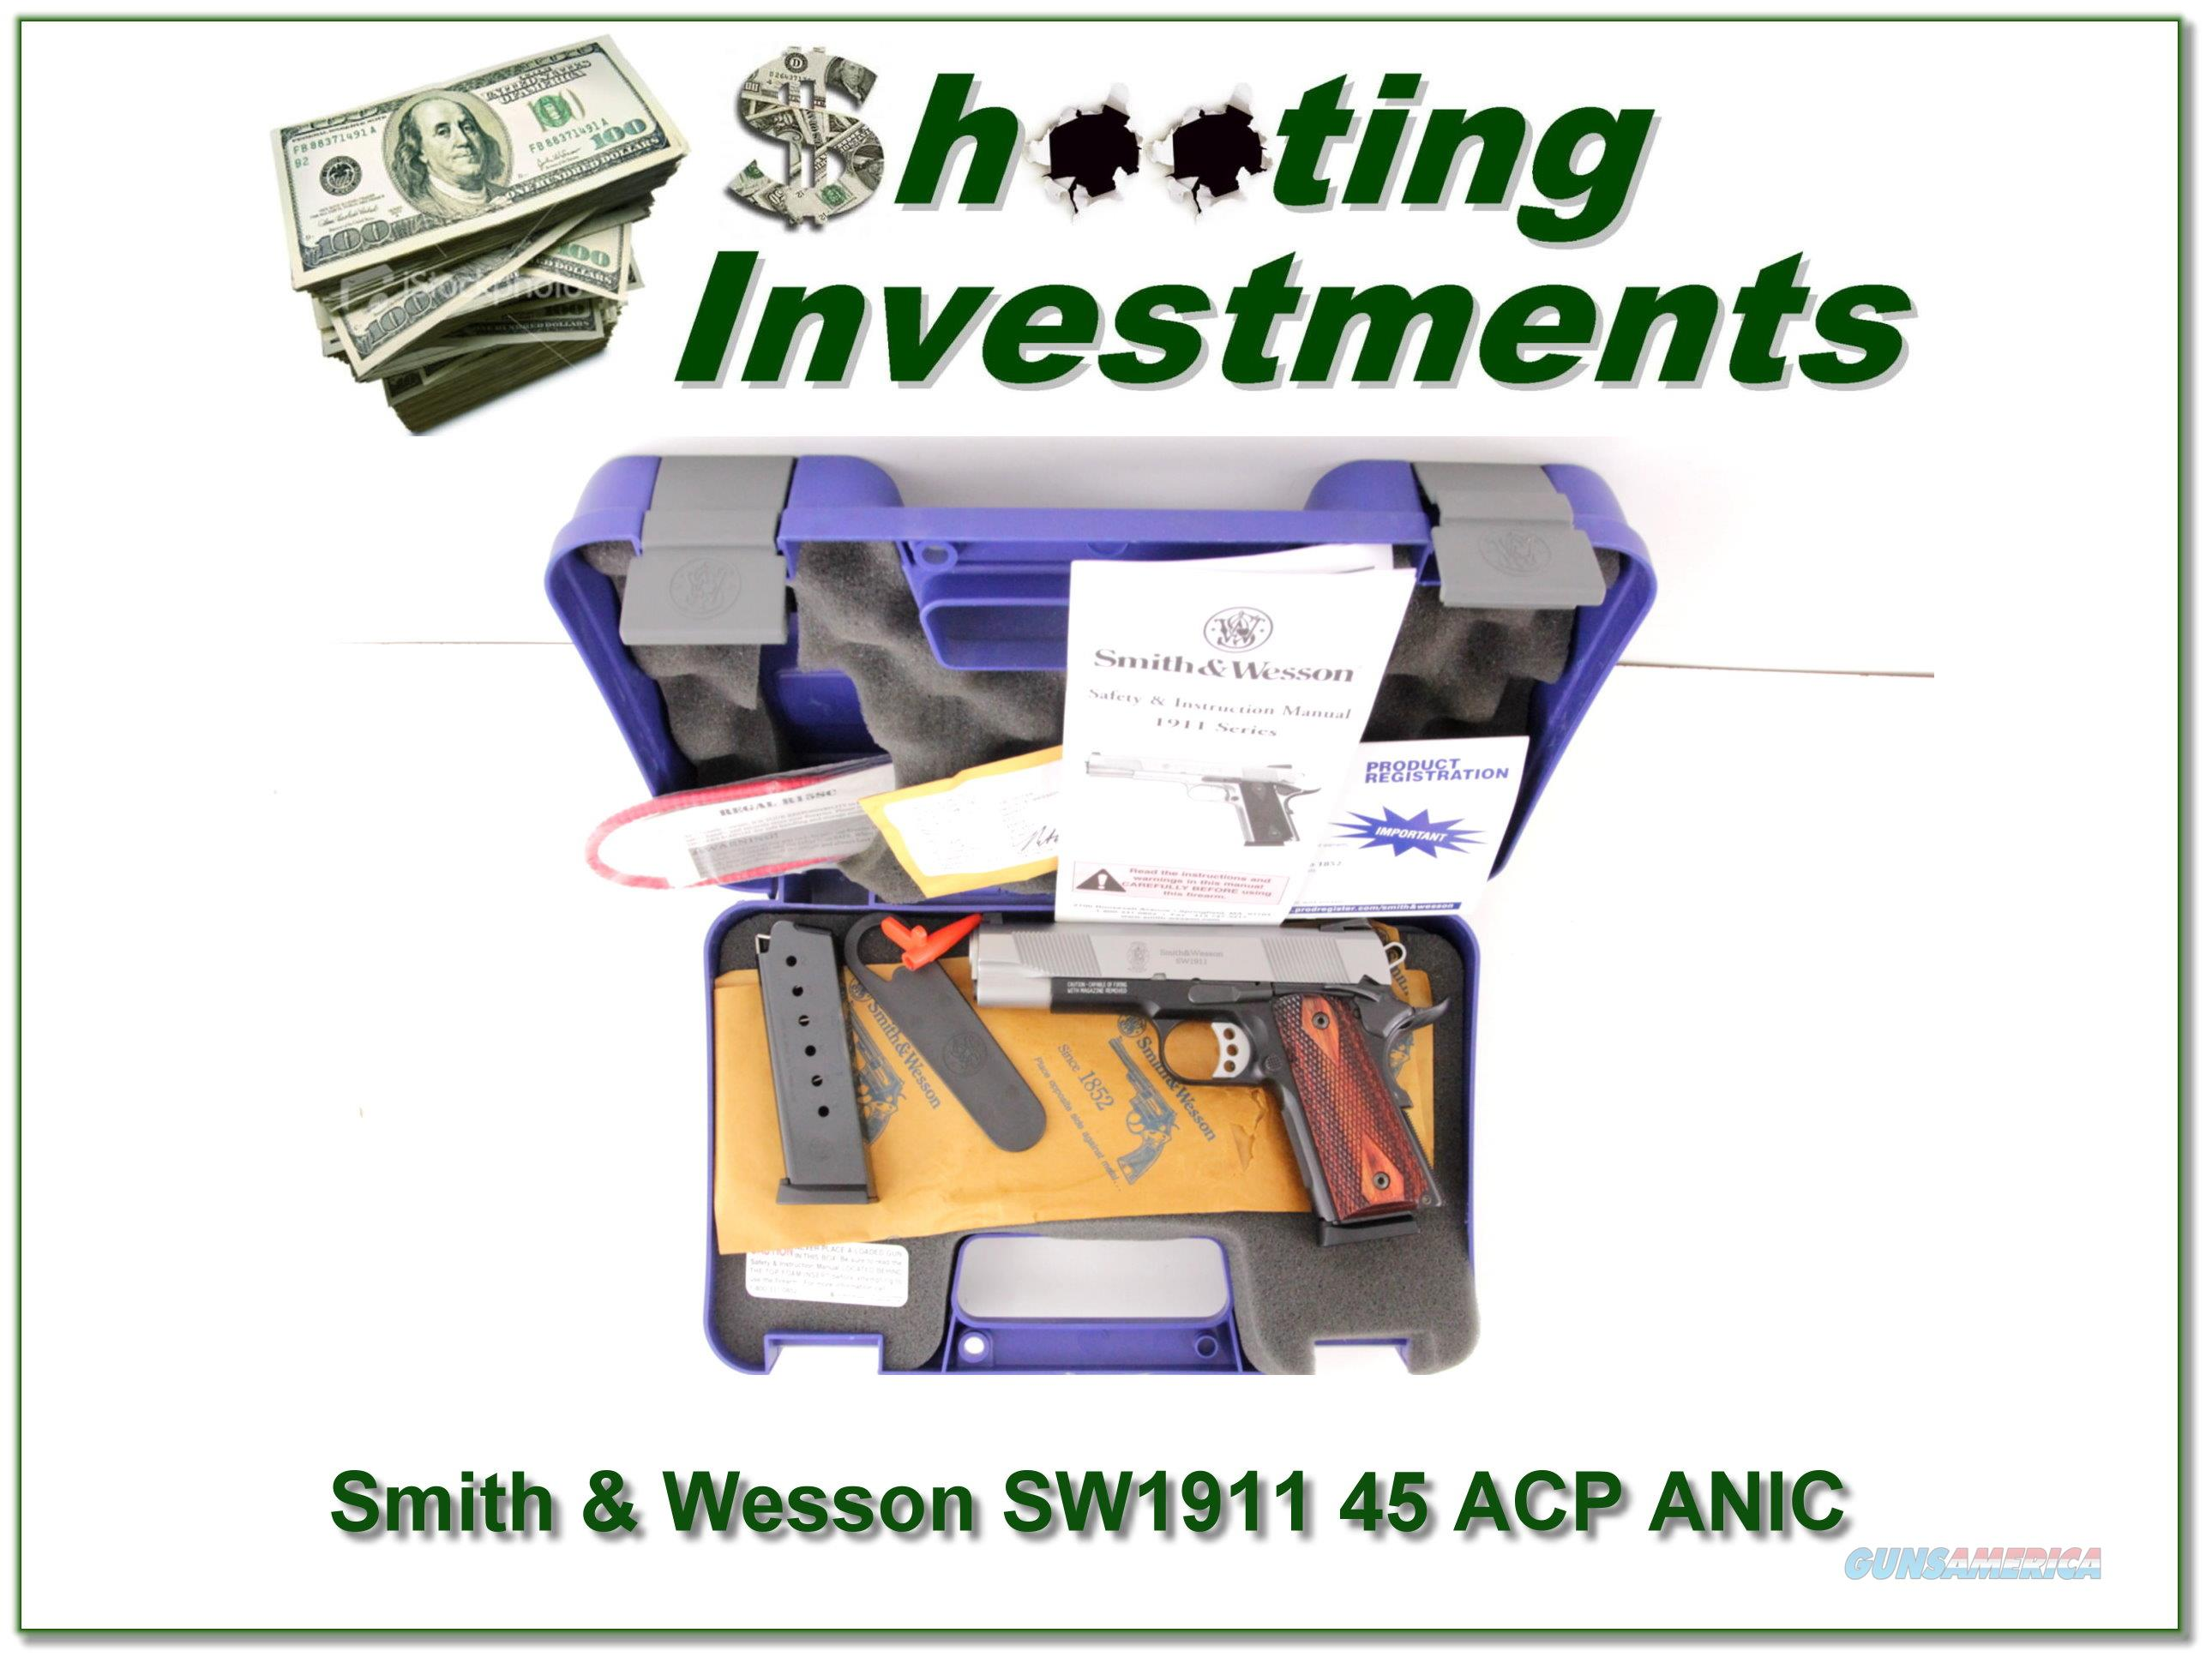 Smith & Wesson SW1911 1911 45 ACP ANIC  Guns > Pistols > Smith & Wesson Pistols - Autos > Steel Frame